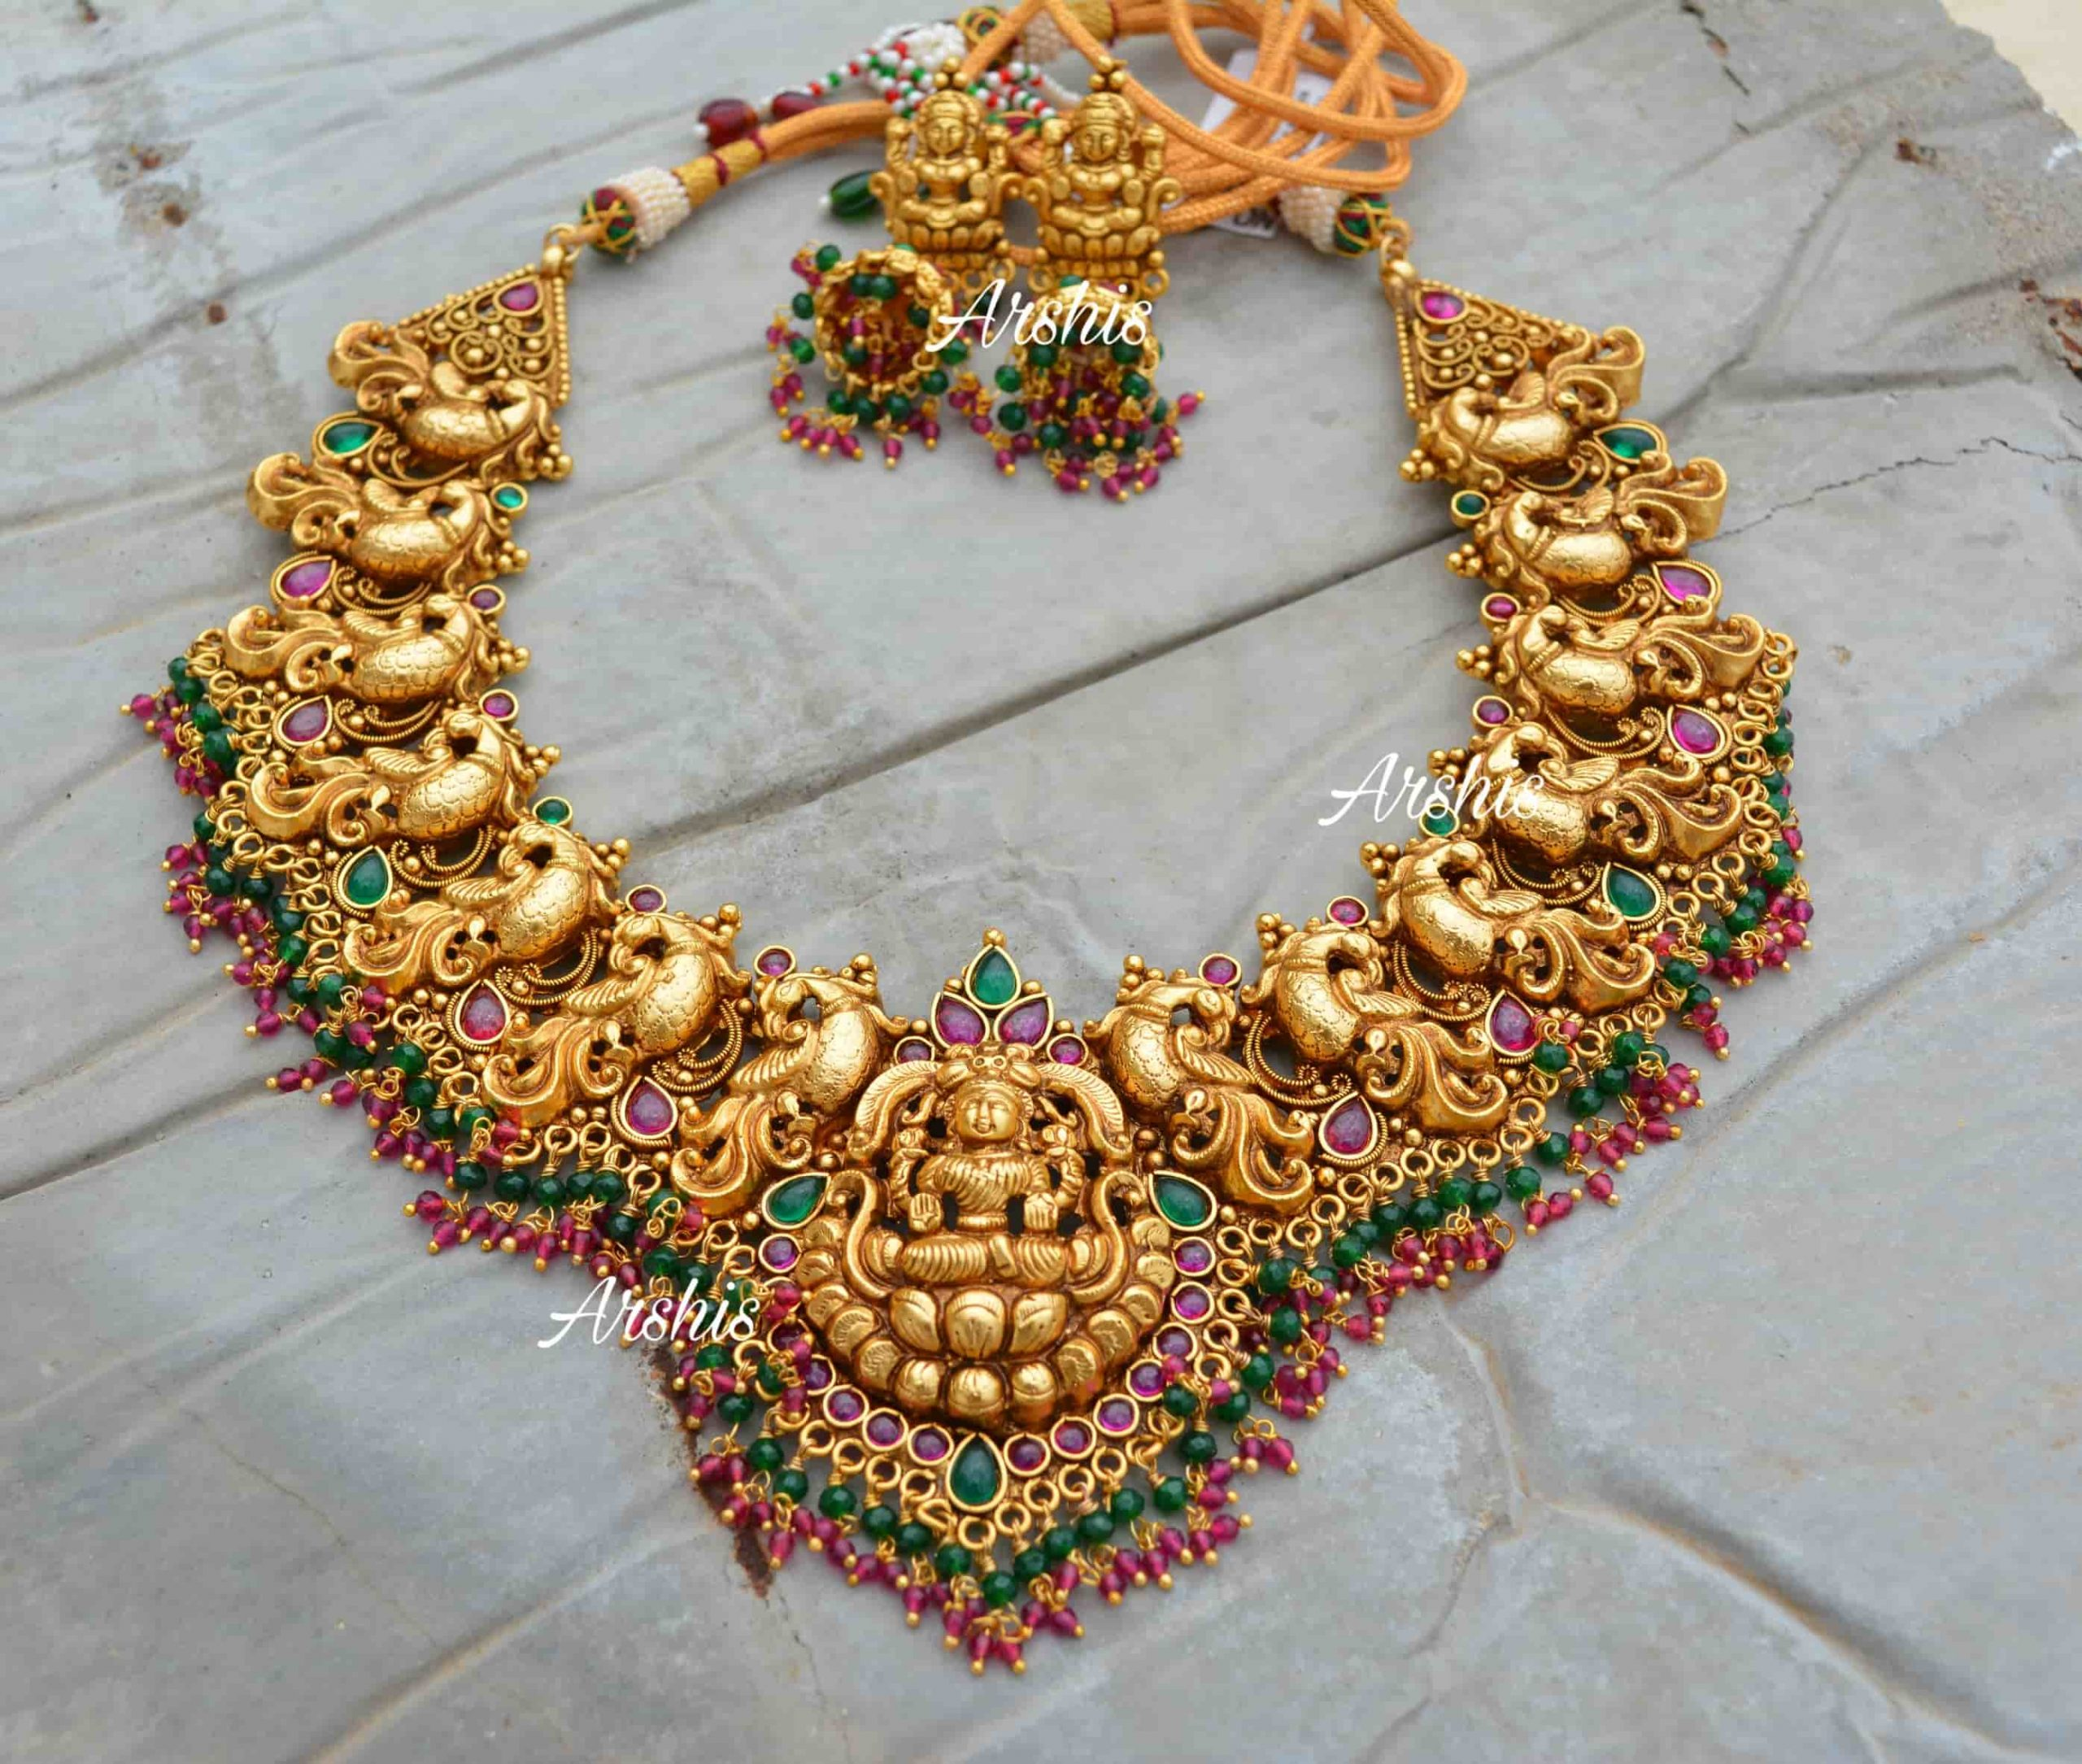 Grand-Bridal-Temple-Lakshmi-Nagas-Necklace-01-scaled